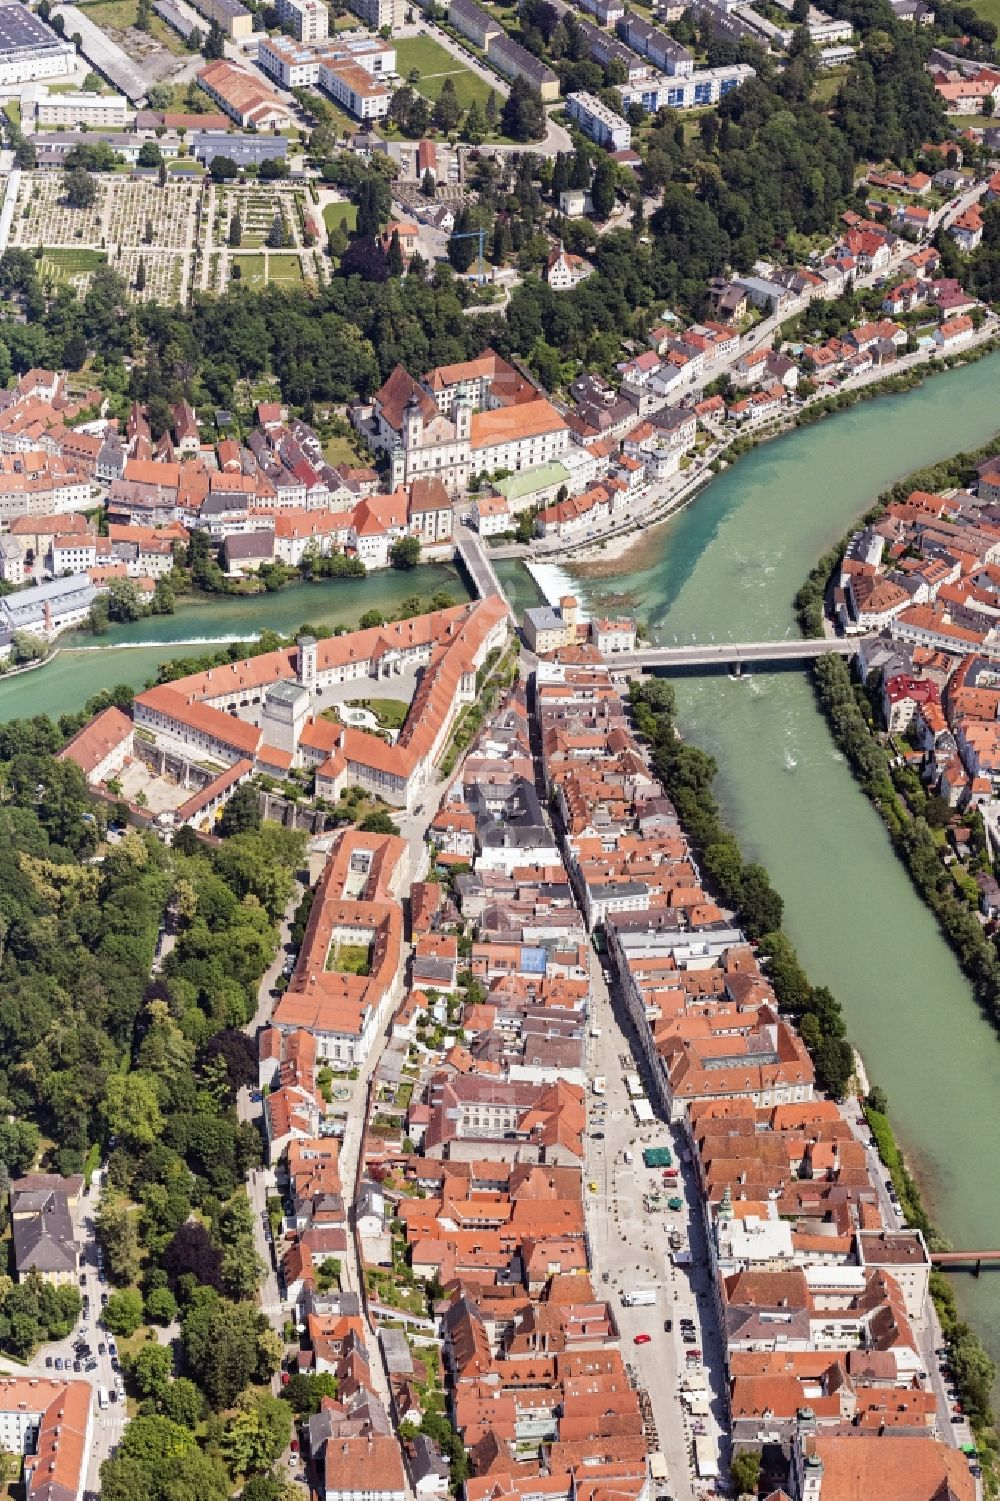 Steyr from above - Old Town area and city center on Muendung of Steyr in die Enns in Steyr in Oberoesterreich, Austria